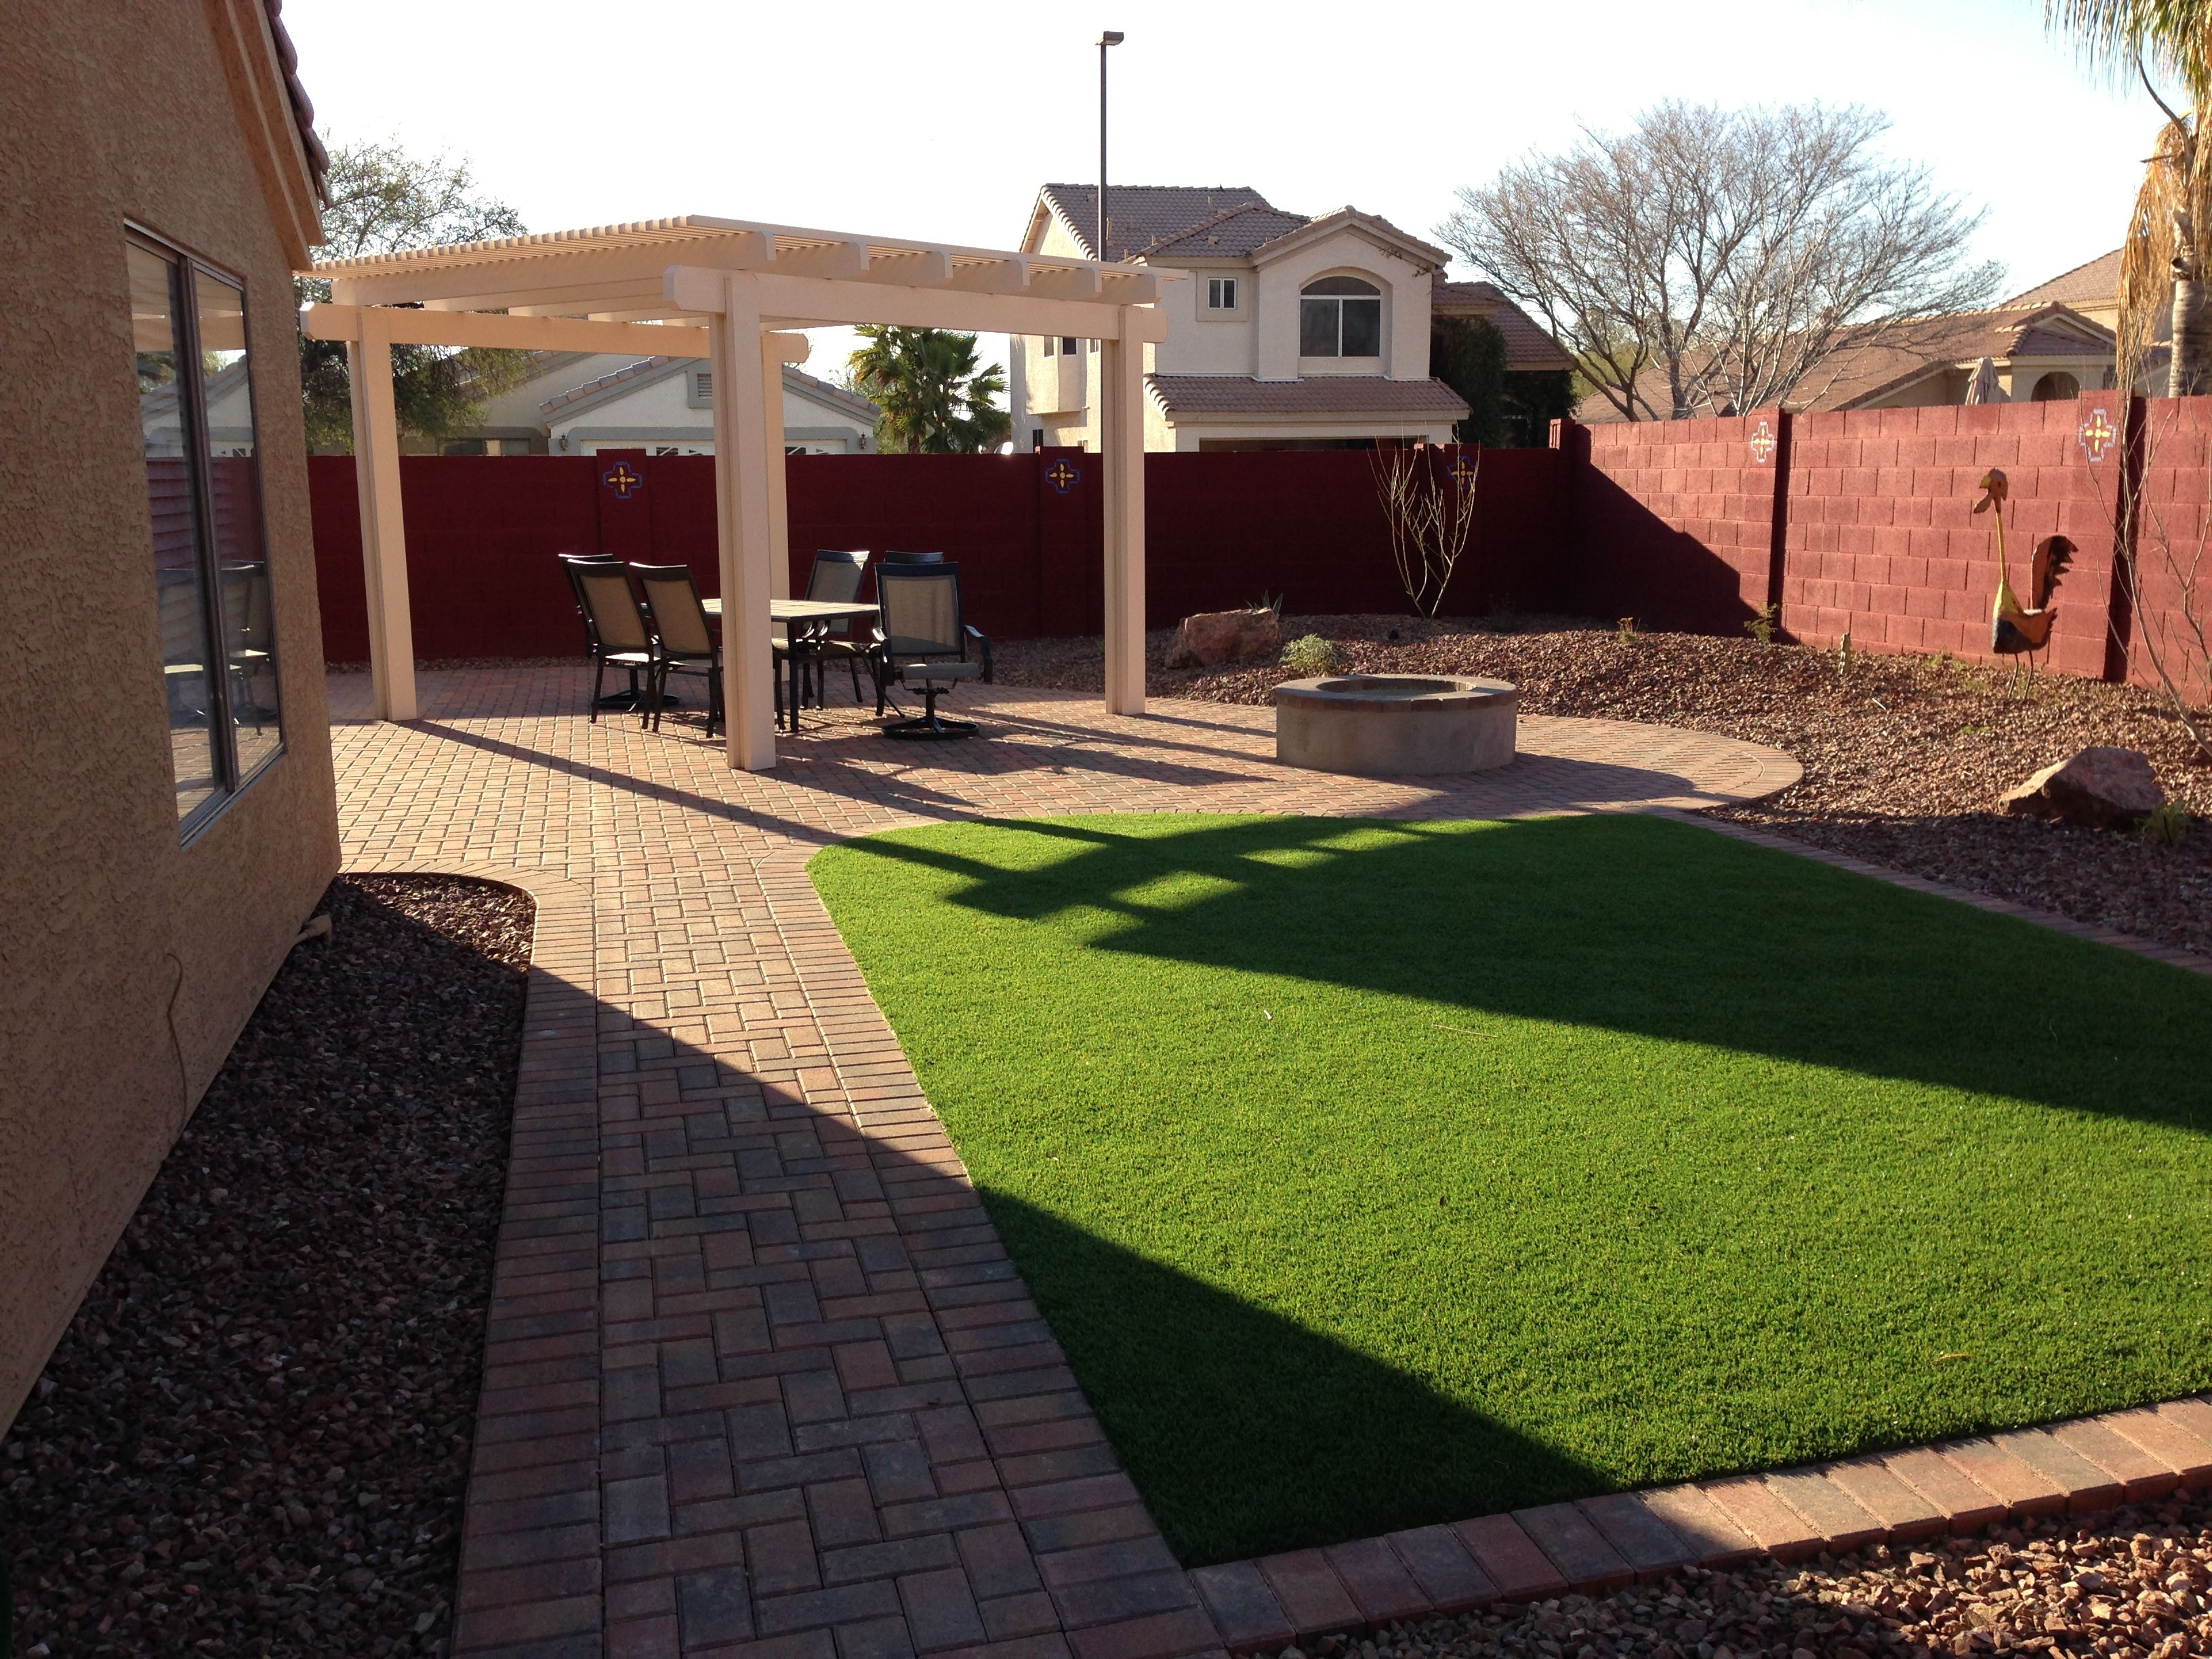 Phoenix Area Backyard Landscape Design Ideas And News Backyard within Arizona Backyard Landscape Design